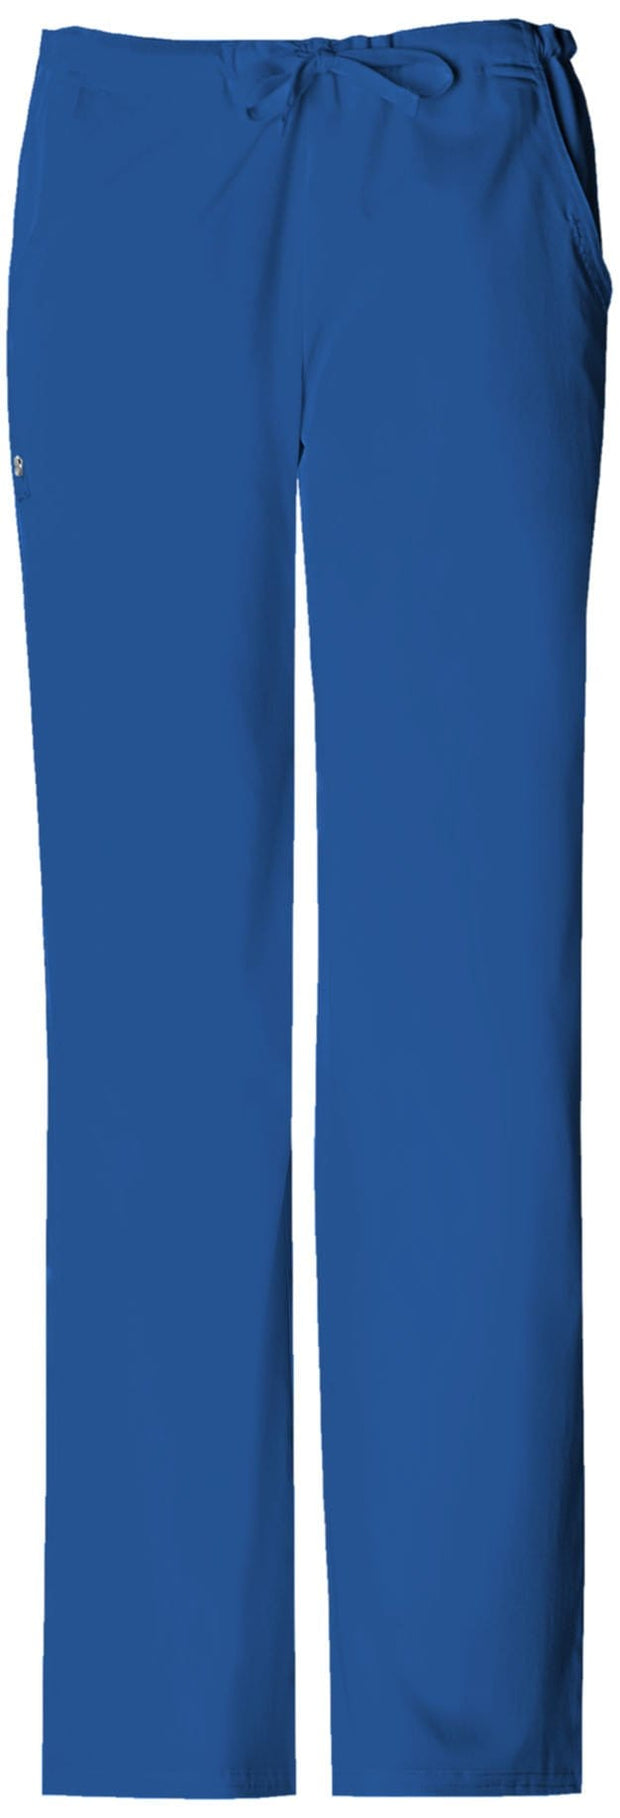 1066P<br> Low Rise Straight Leg Drawstring Pant (Petite)